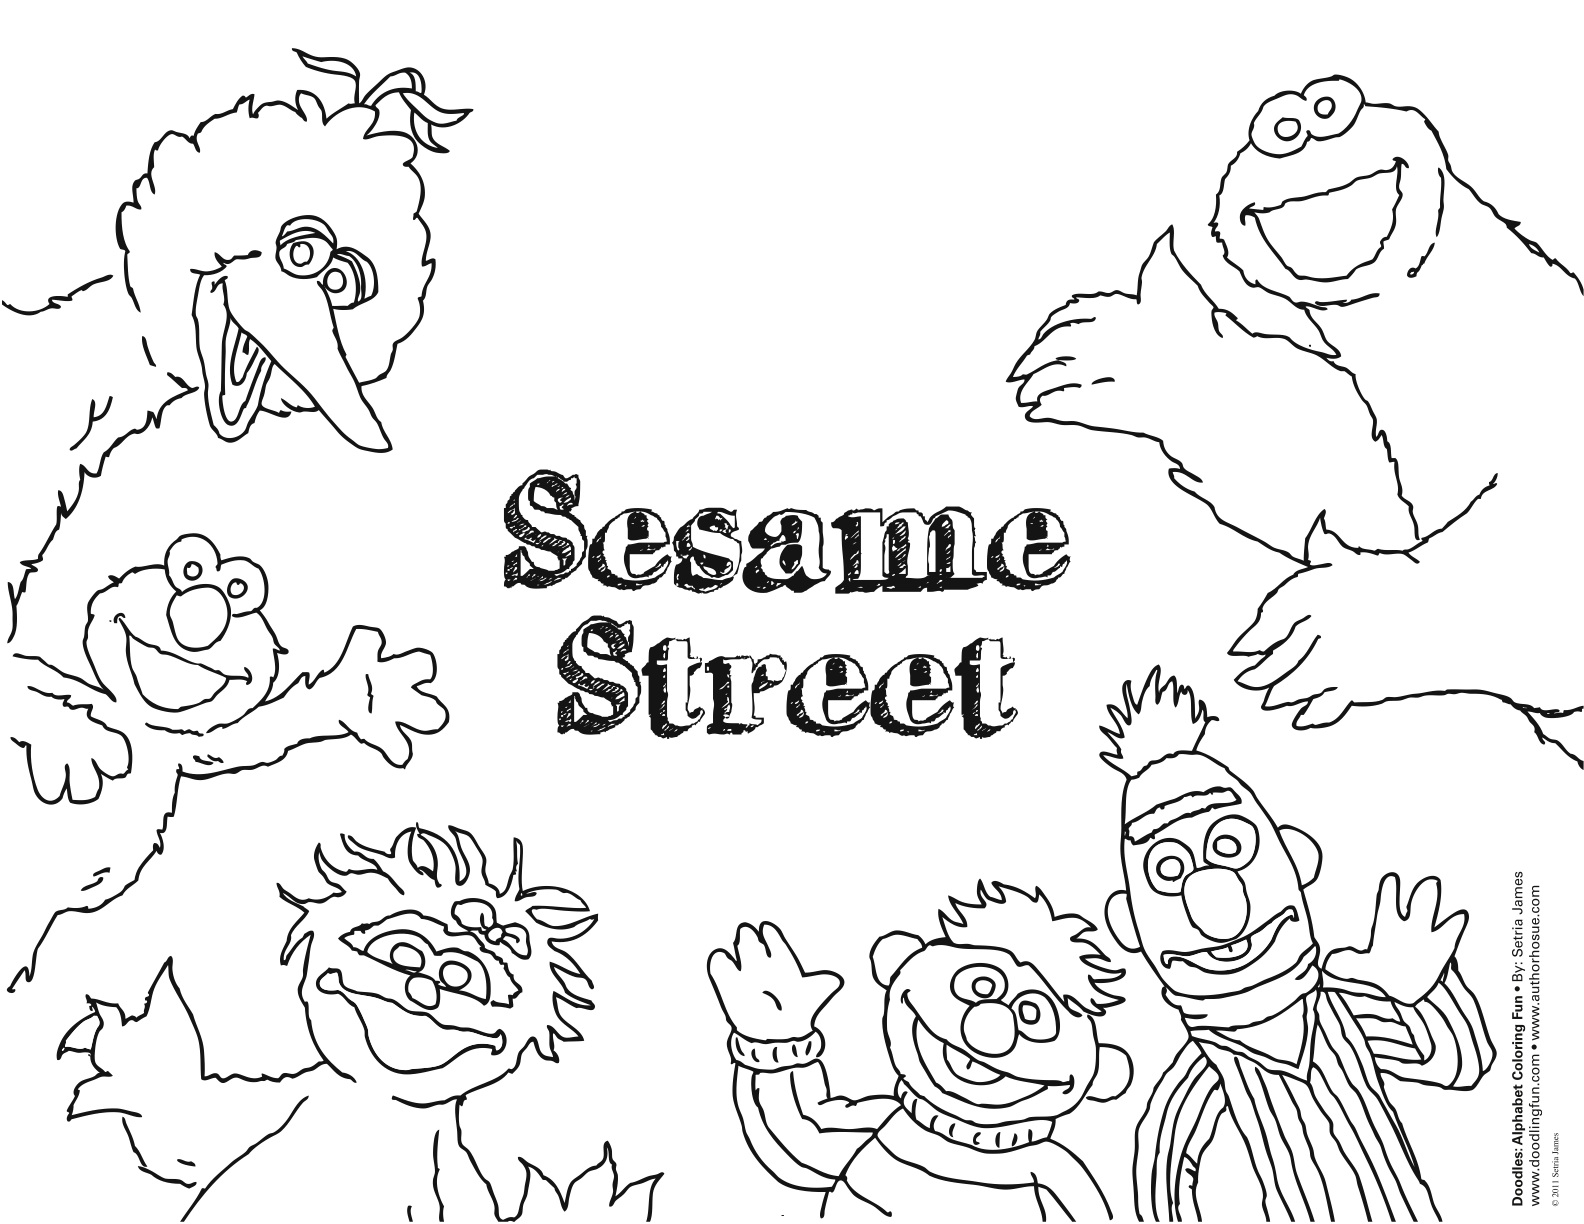 sesame street sign coloring pages - photo#11